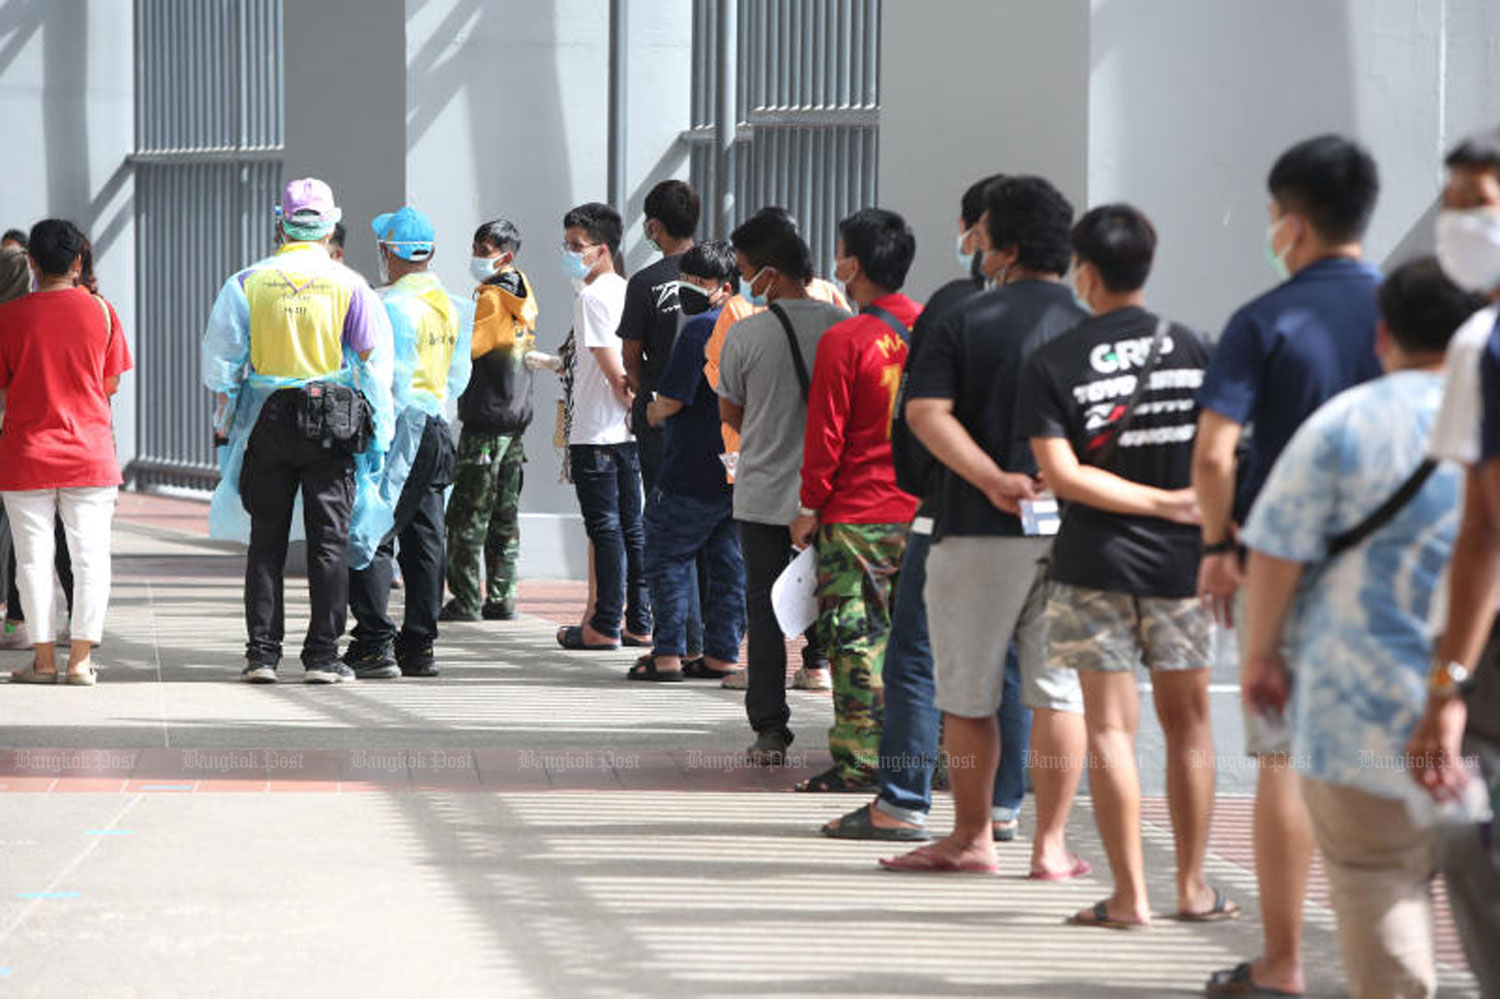 People queue up for rapid Covid-19 antigen testing at Bangkok's Rajamangala National Stadium on Tuesday. About 1,500 people sought to get tested. (Photo: Varuth Hirunyatheb)